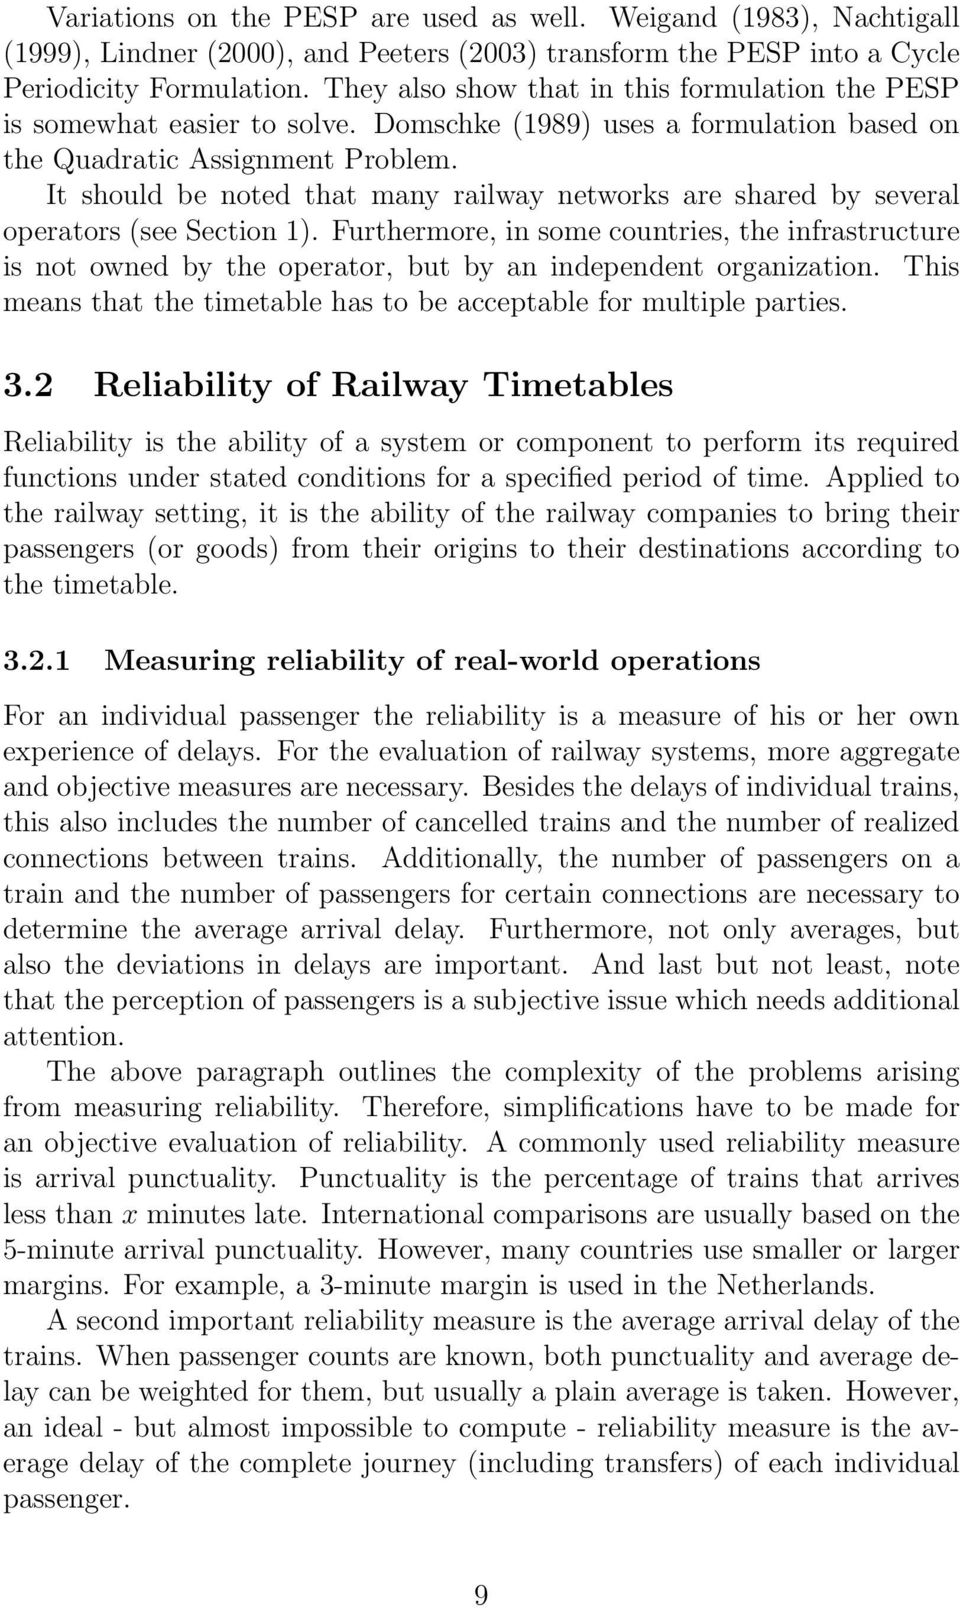 It should be noted that many railway networks are shared by several operators (see Section 1).